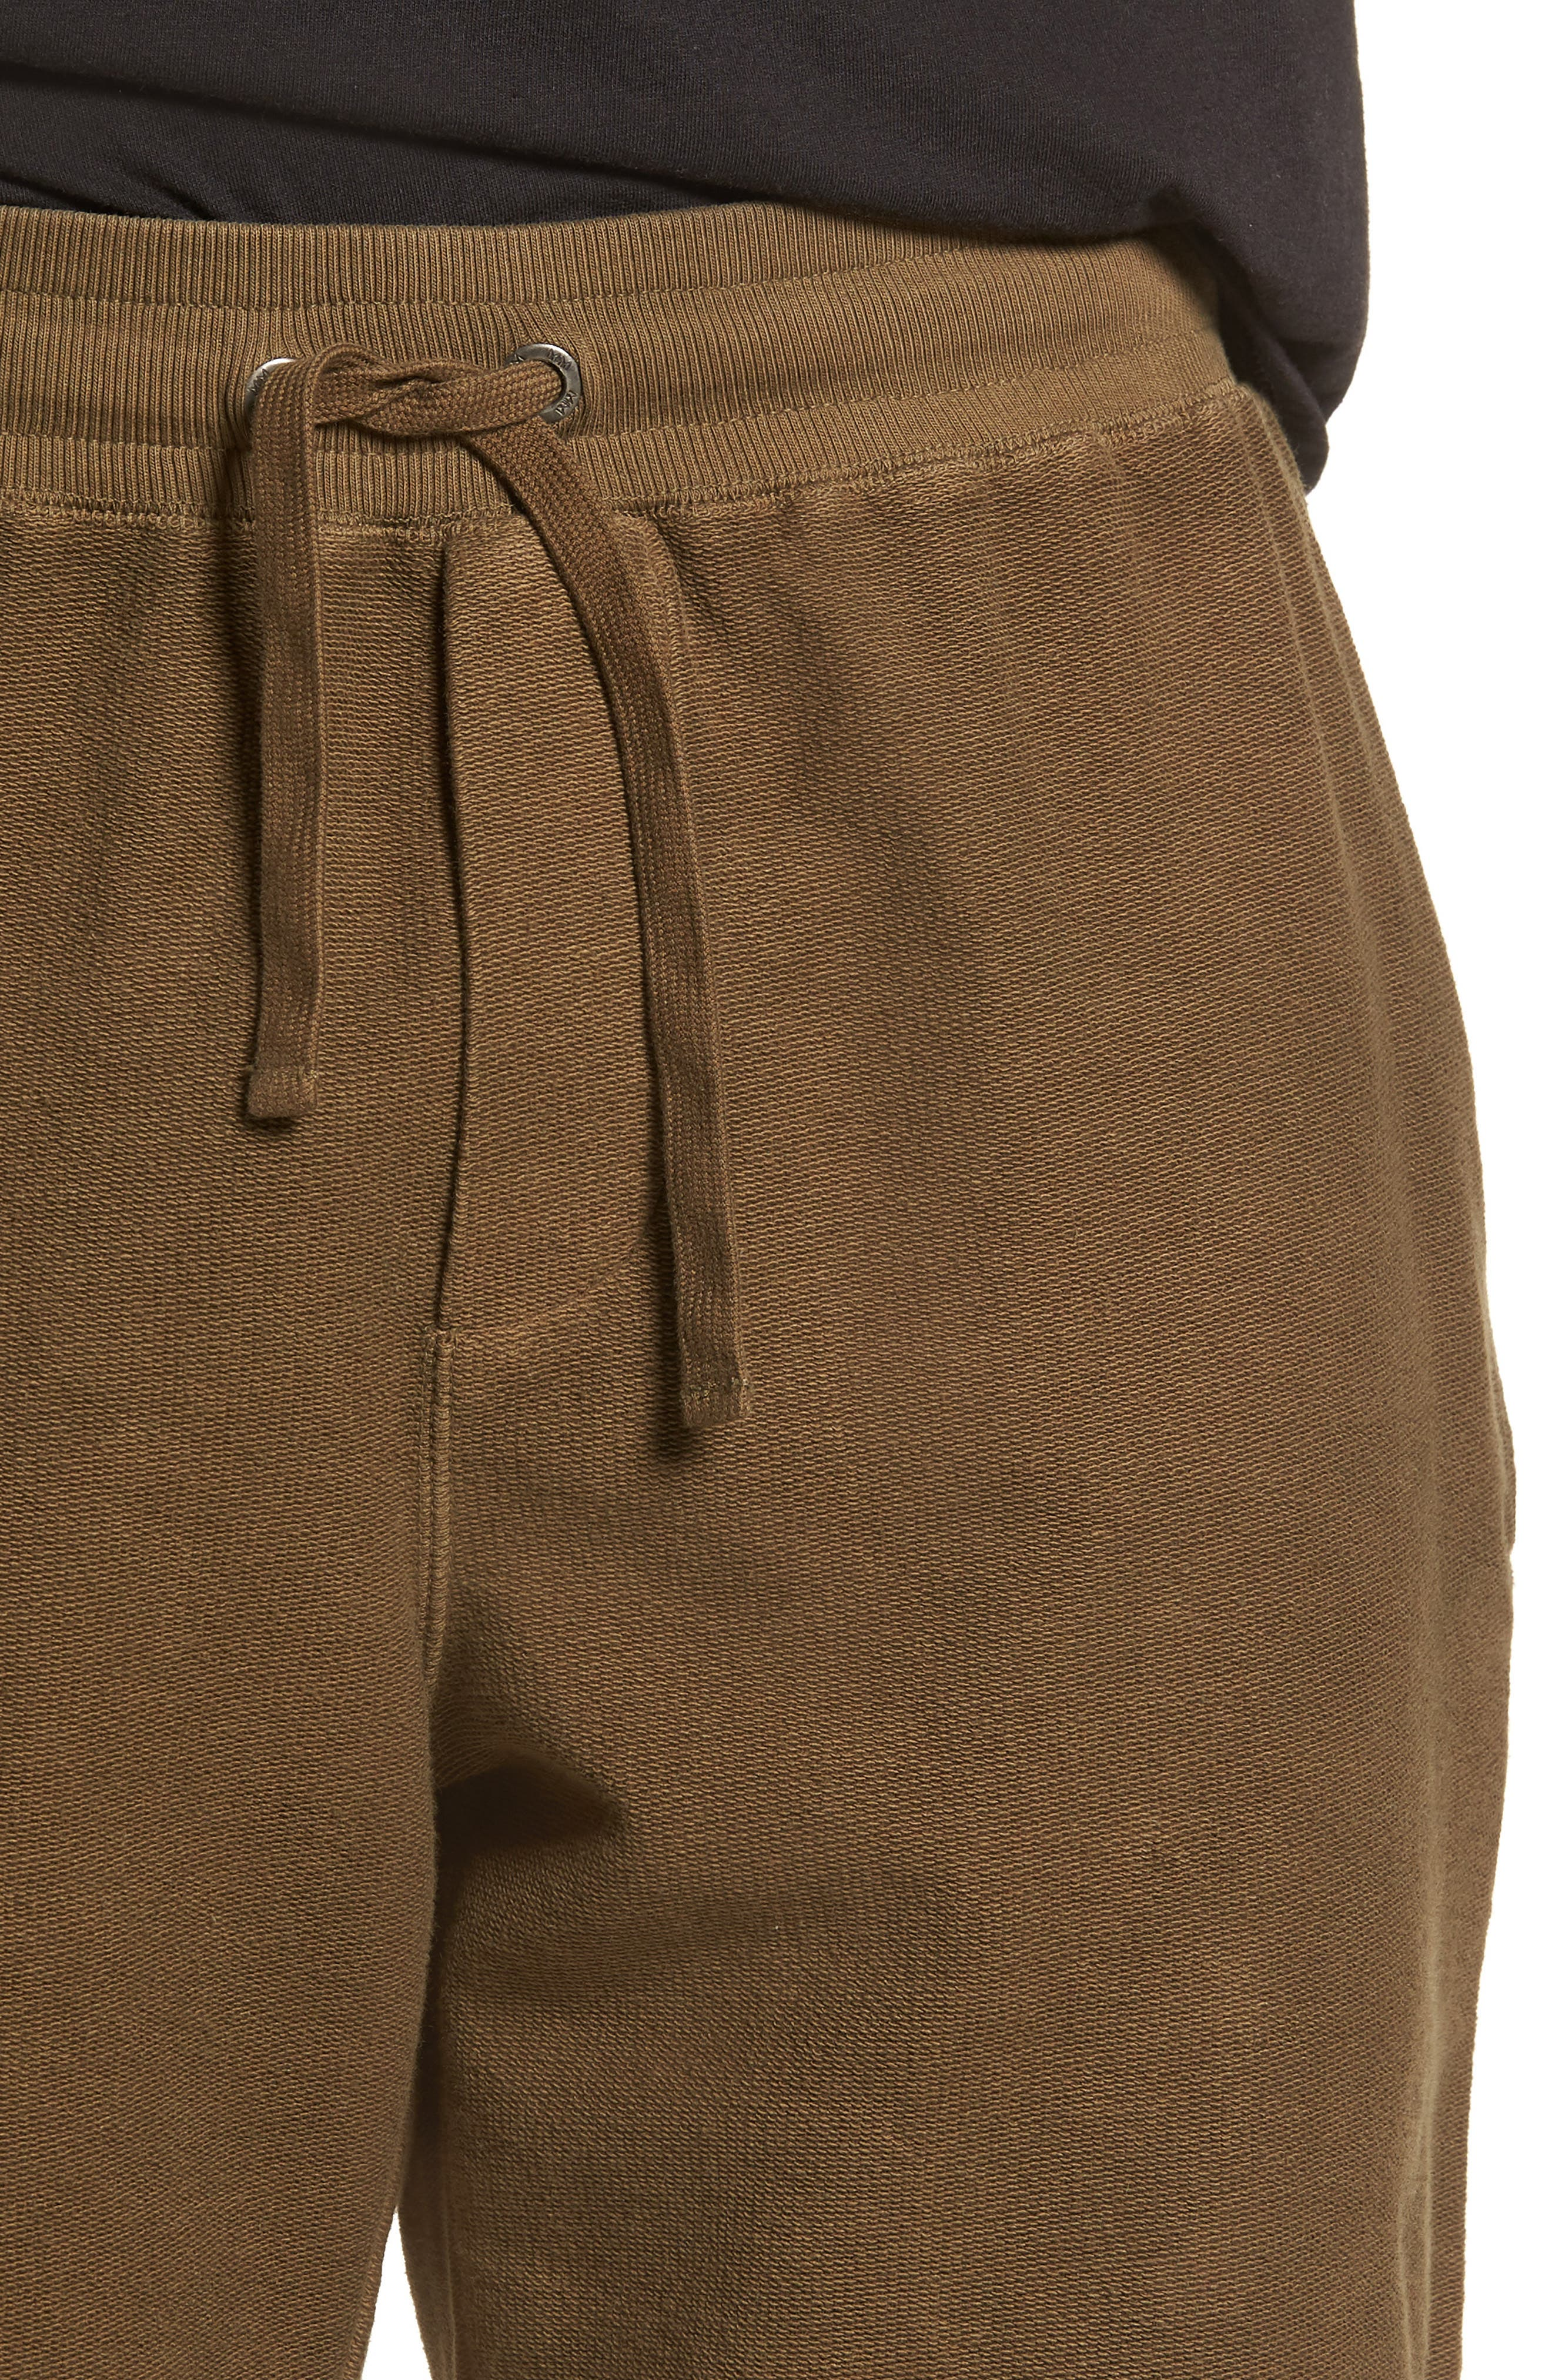 THE RAIL,                             Reverse Terry Shorts,                             Alternate thumbnail 4, color,                             315